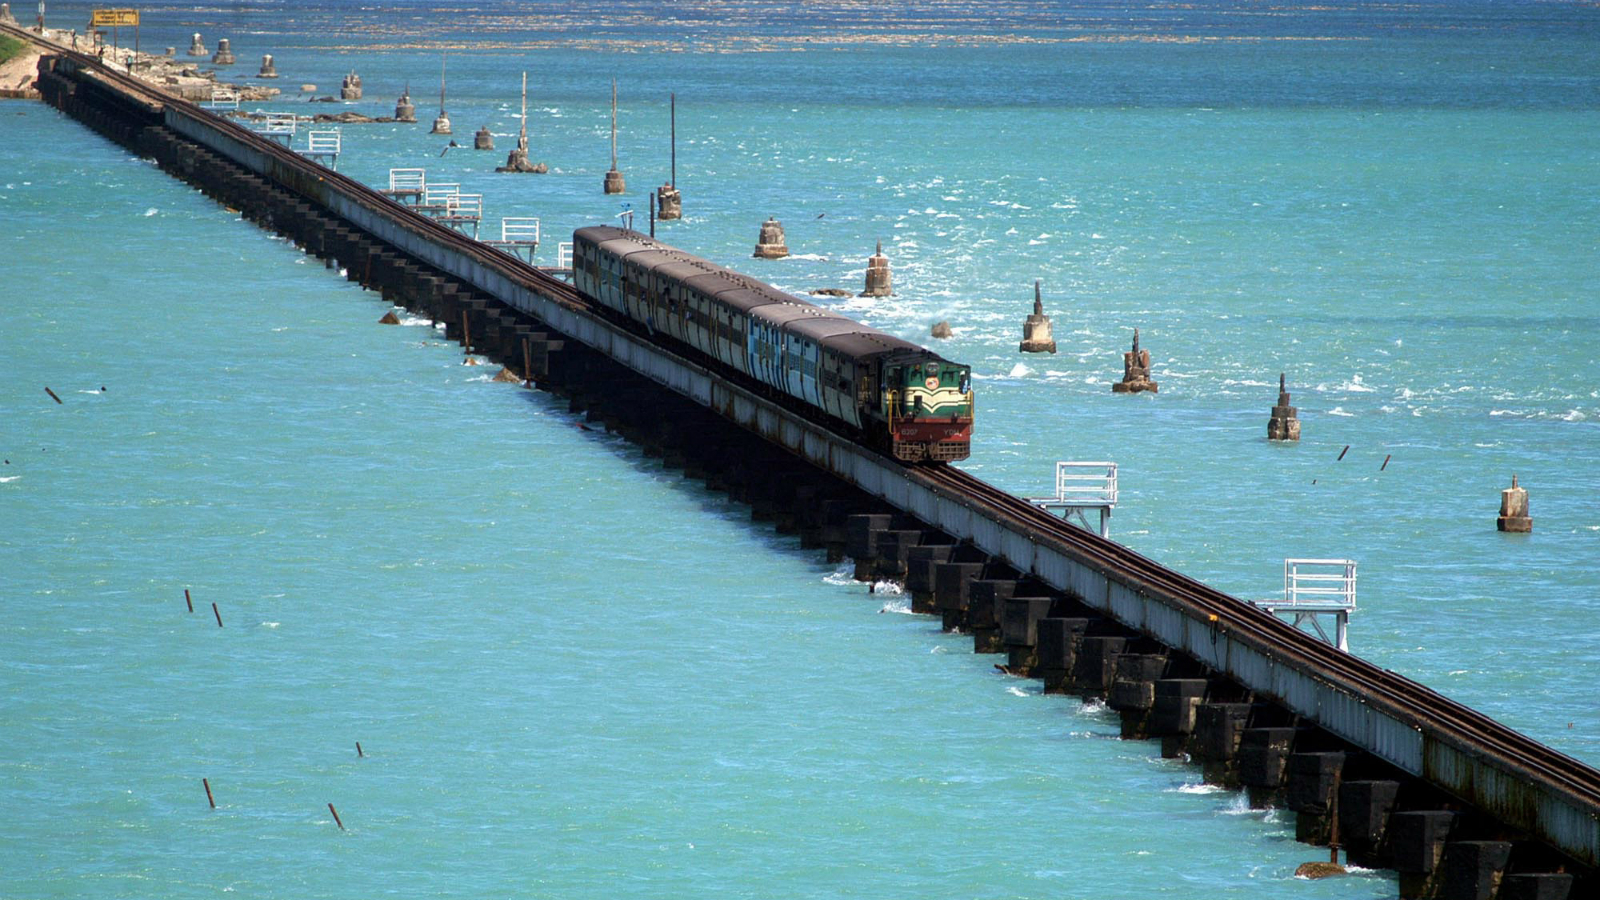 India-Indian Railways-Indian Navy-Andaman and Nicobar-Indian Ocean-Border-Geopolitical